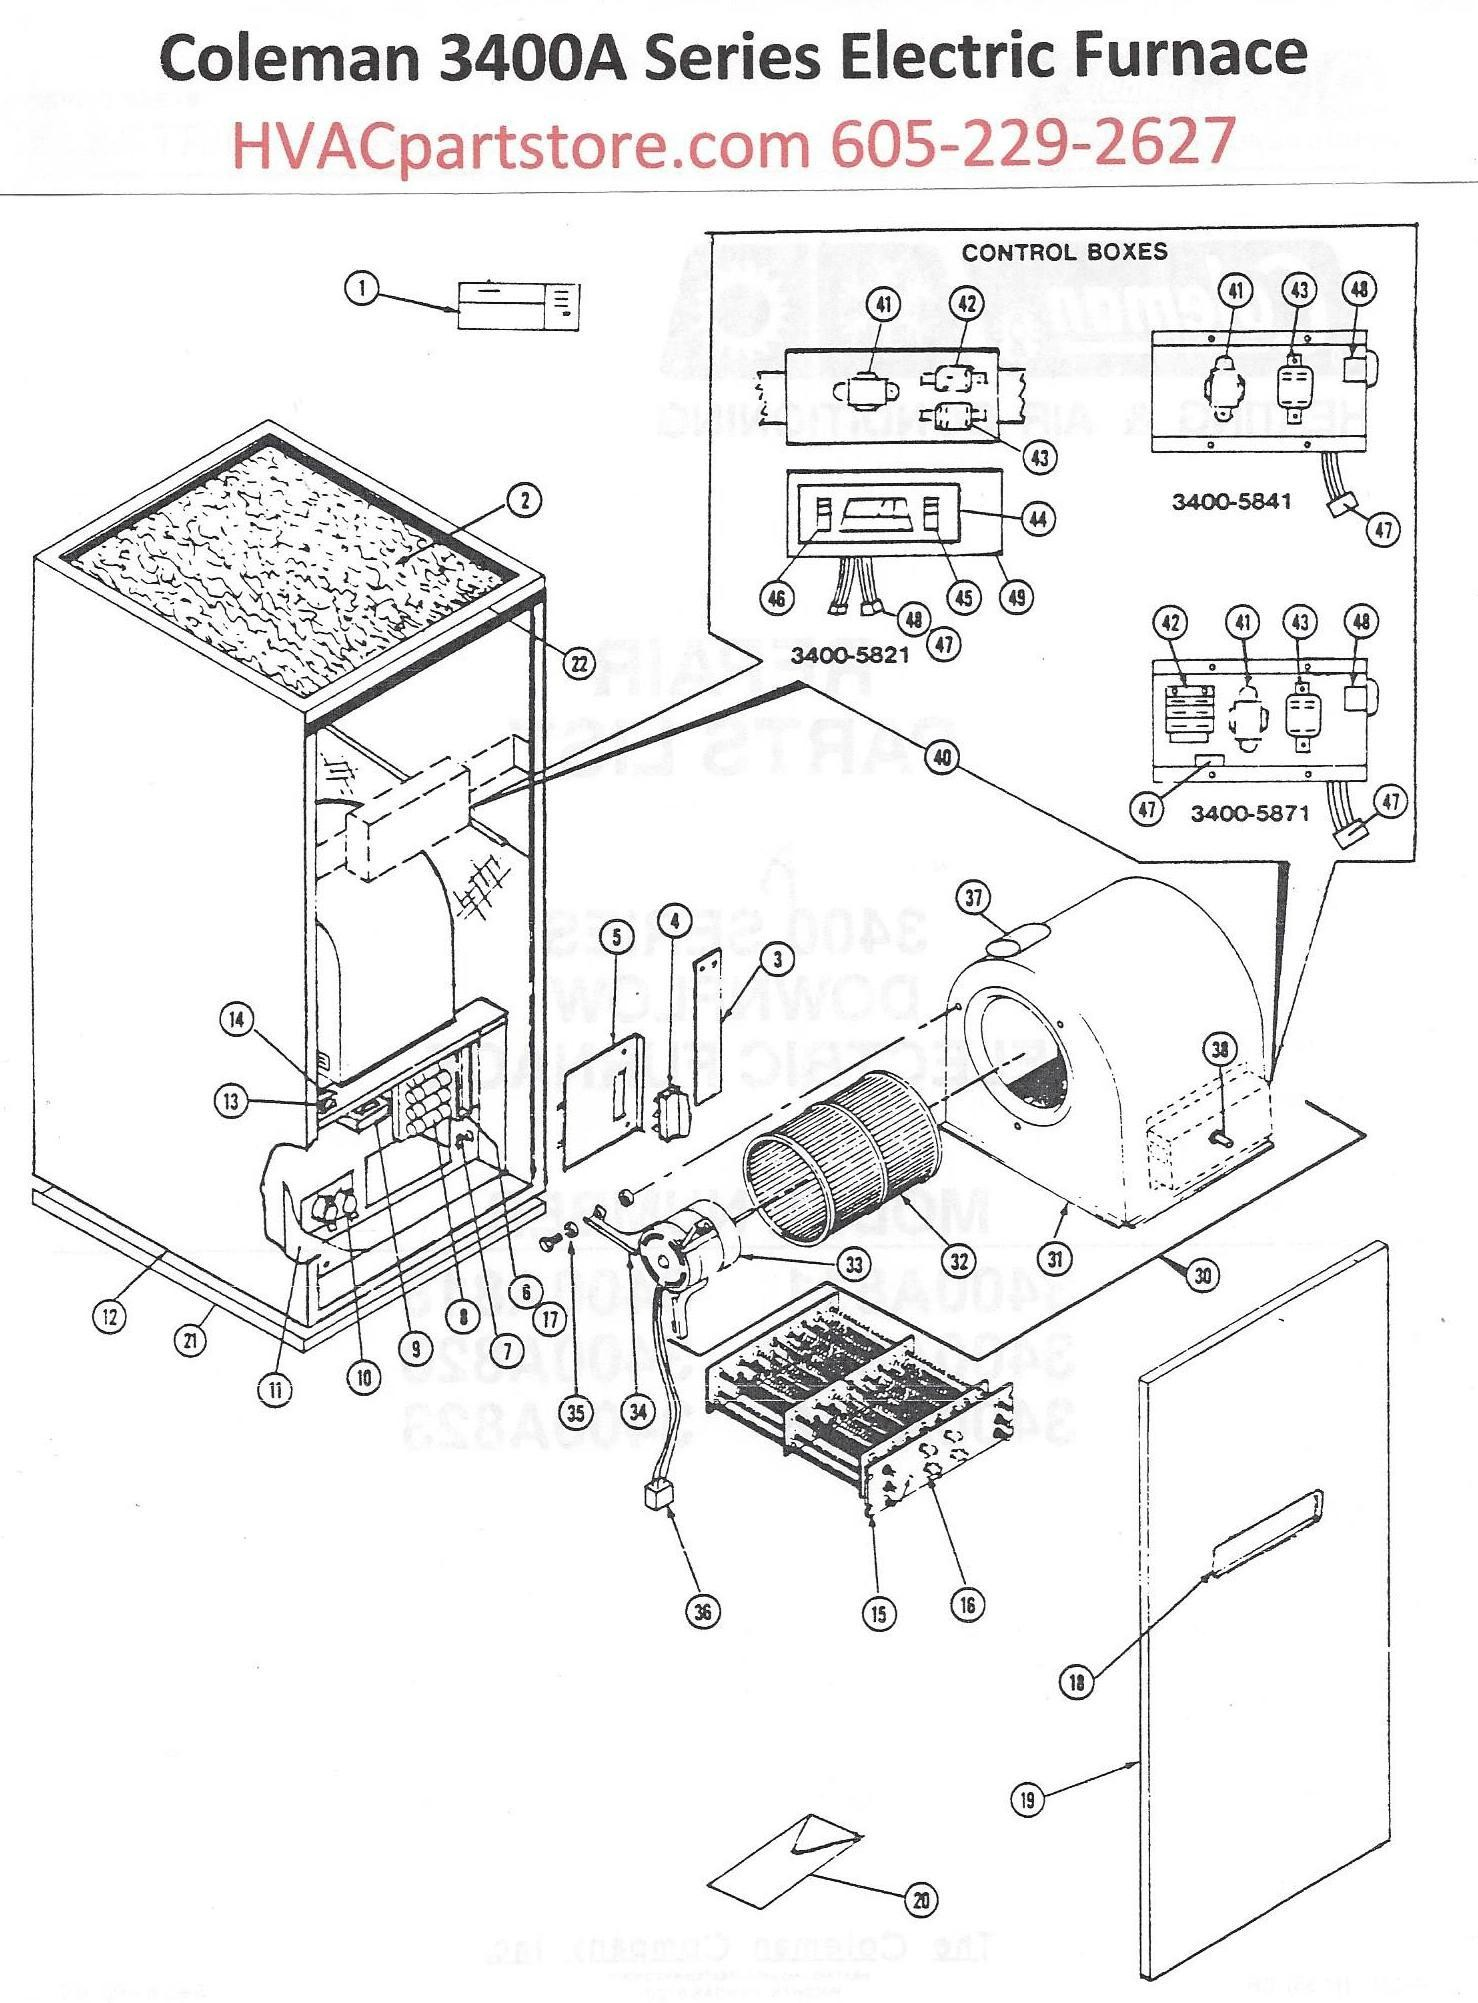 Coleman 3400a Series Electric Furnance Diagram